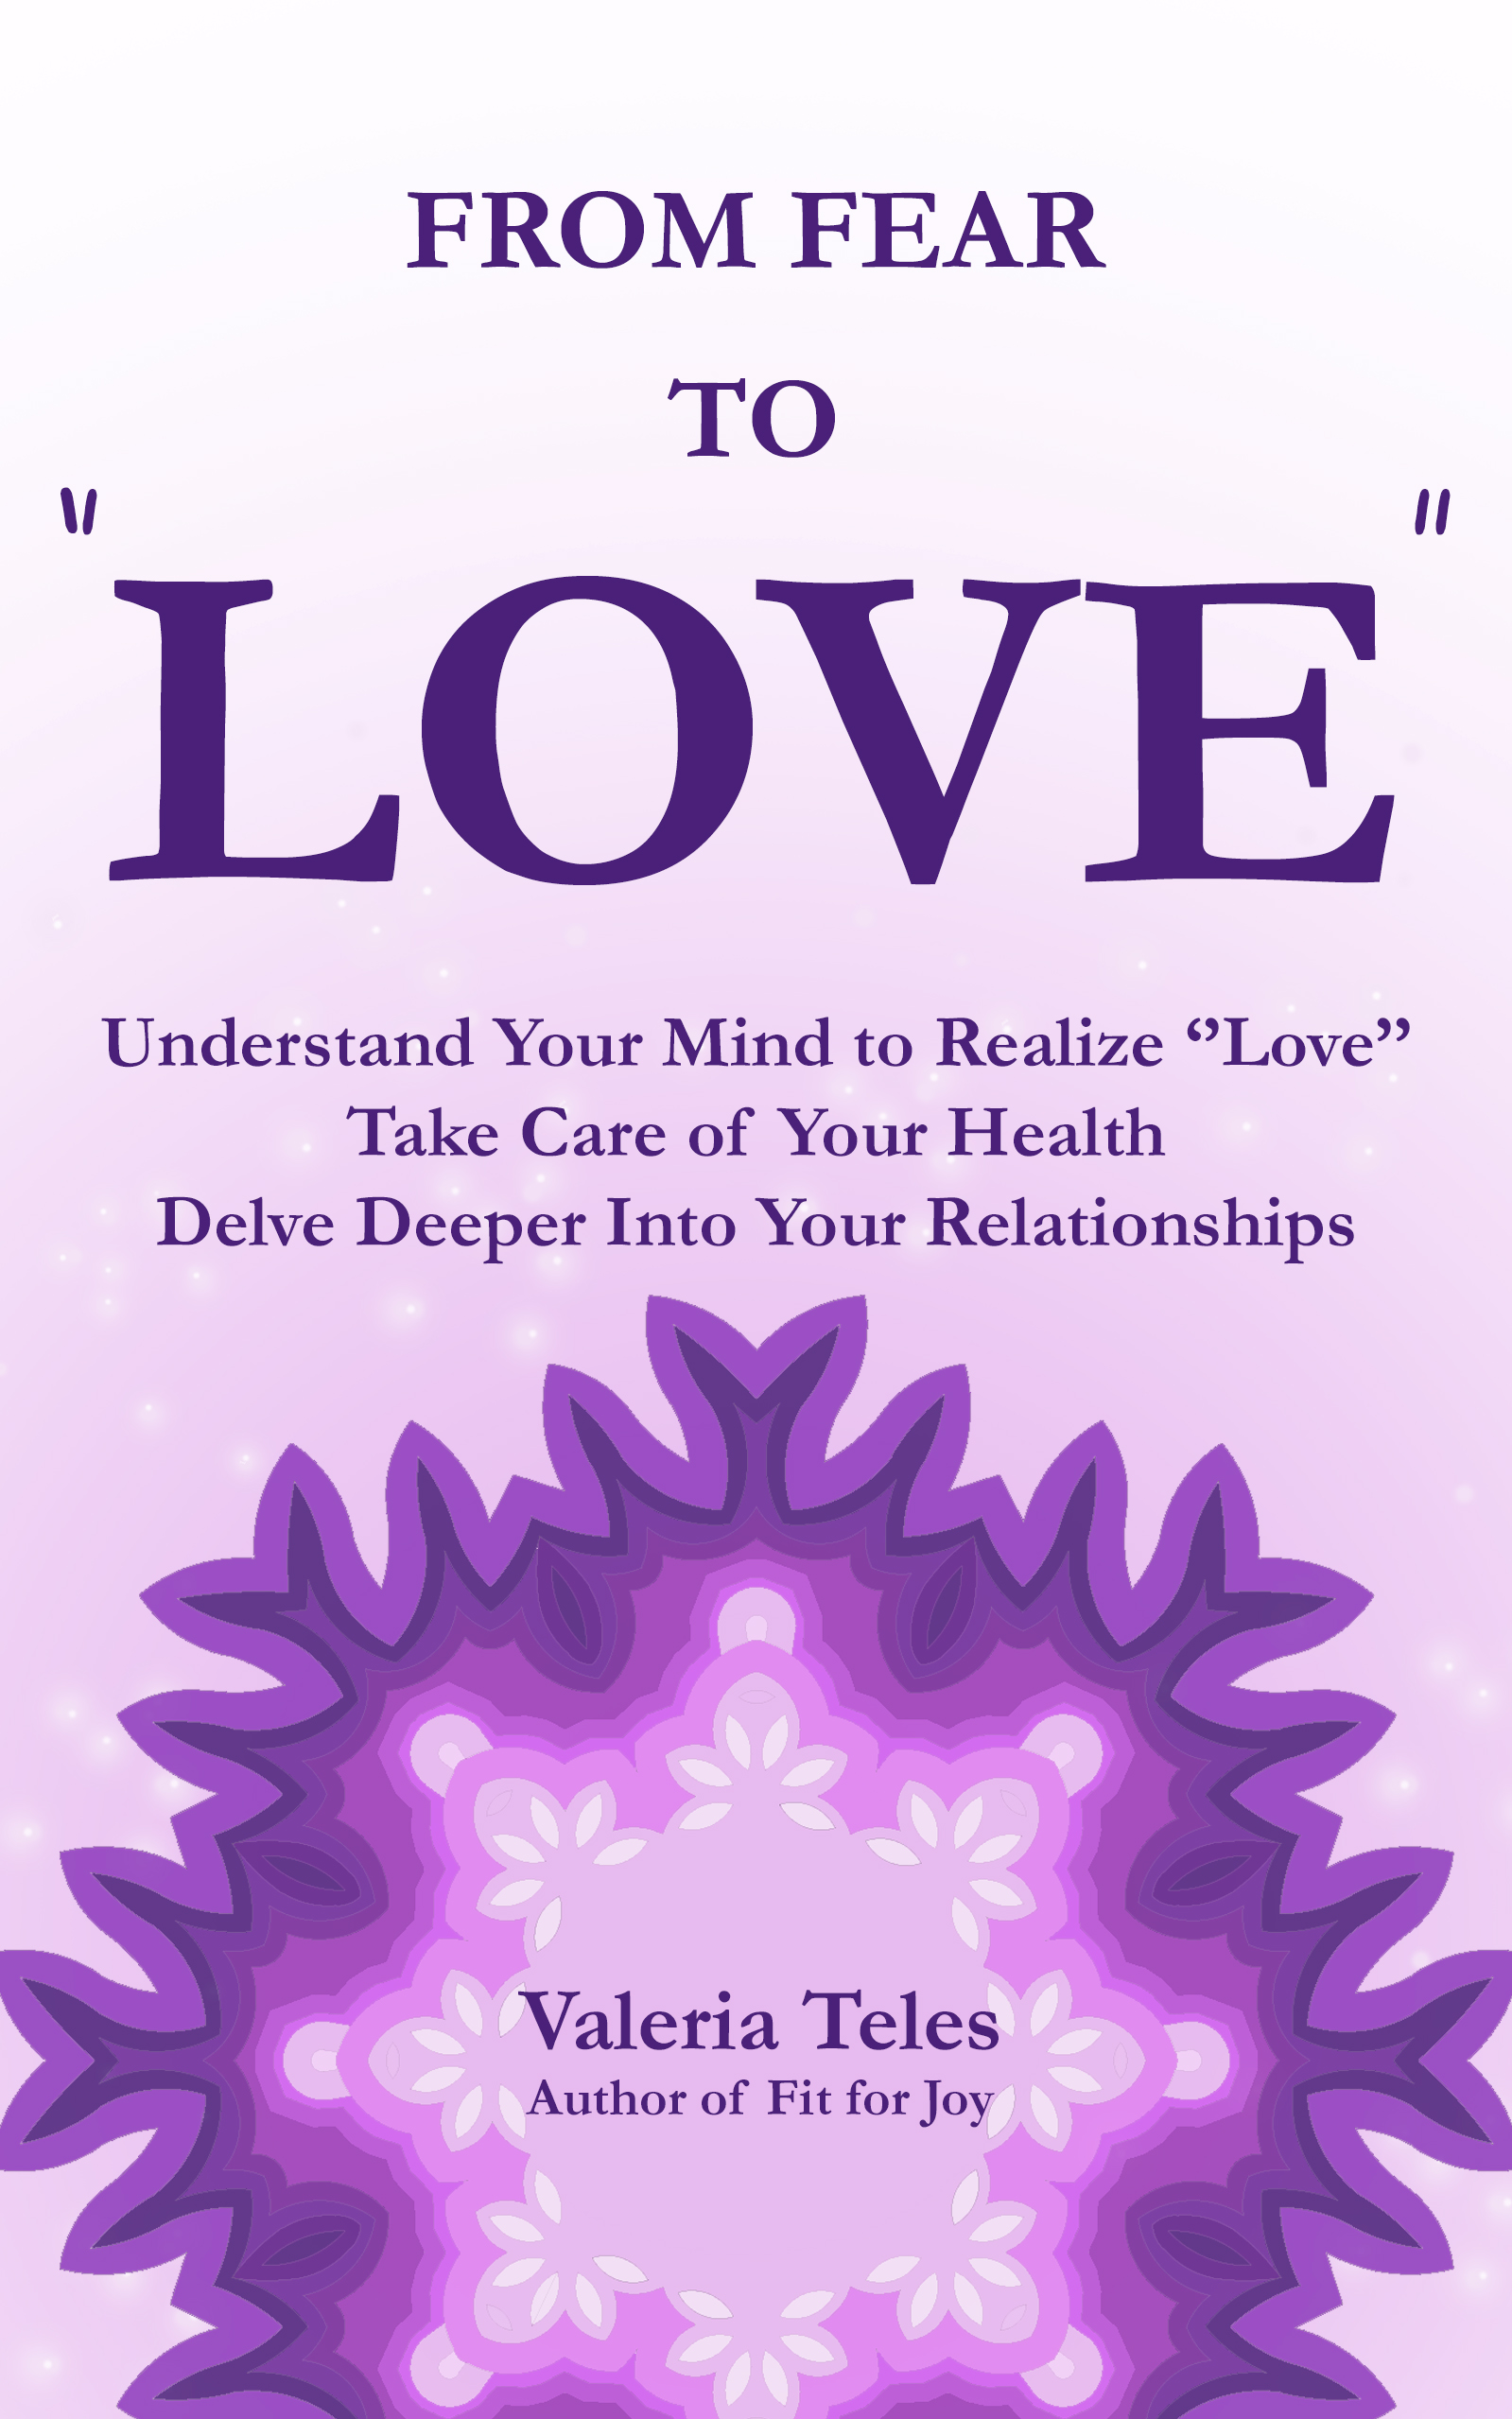 """More """"Love"""" ——Less Fear - AWAKEN TO WHO YOU REALLY ARE.The mind creates everything, except """"Love.""""""""Love"""" cannot be created for it is all there is.""""Love"""" was there before the mind.This work is comprised of thoughts on self-care, non-duality, self-inquiry, and relational awareness. It brings to light how self-knowledge ignites the process of defining what """"Love"""" is in our lives.Fear holds us back from experiencing """"Love"""" and joy.We act and think a certain way, apprehensive of how """"others"""" might view us or concerned that we won't measure up to their expectations.In truth, our way of loving is another way of being afraid.This brings us to a question: What would it look like to have no fear—to be fearless to """"Love""""?"""